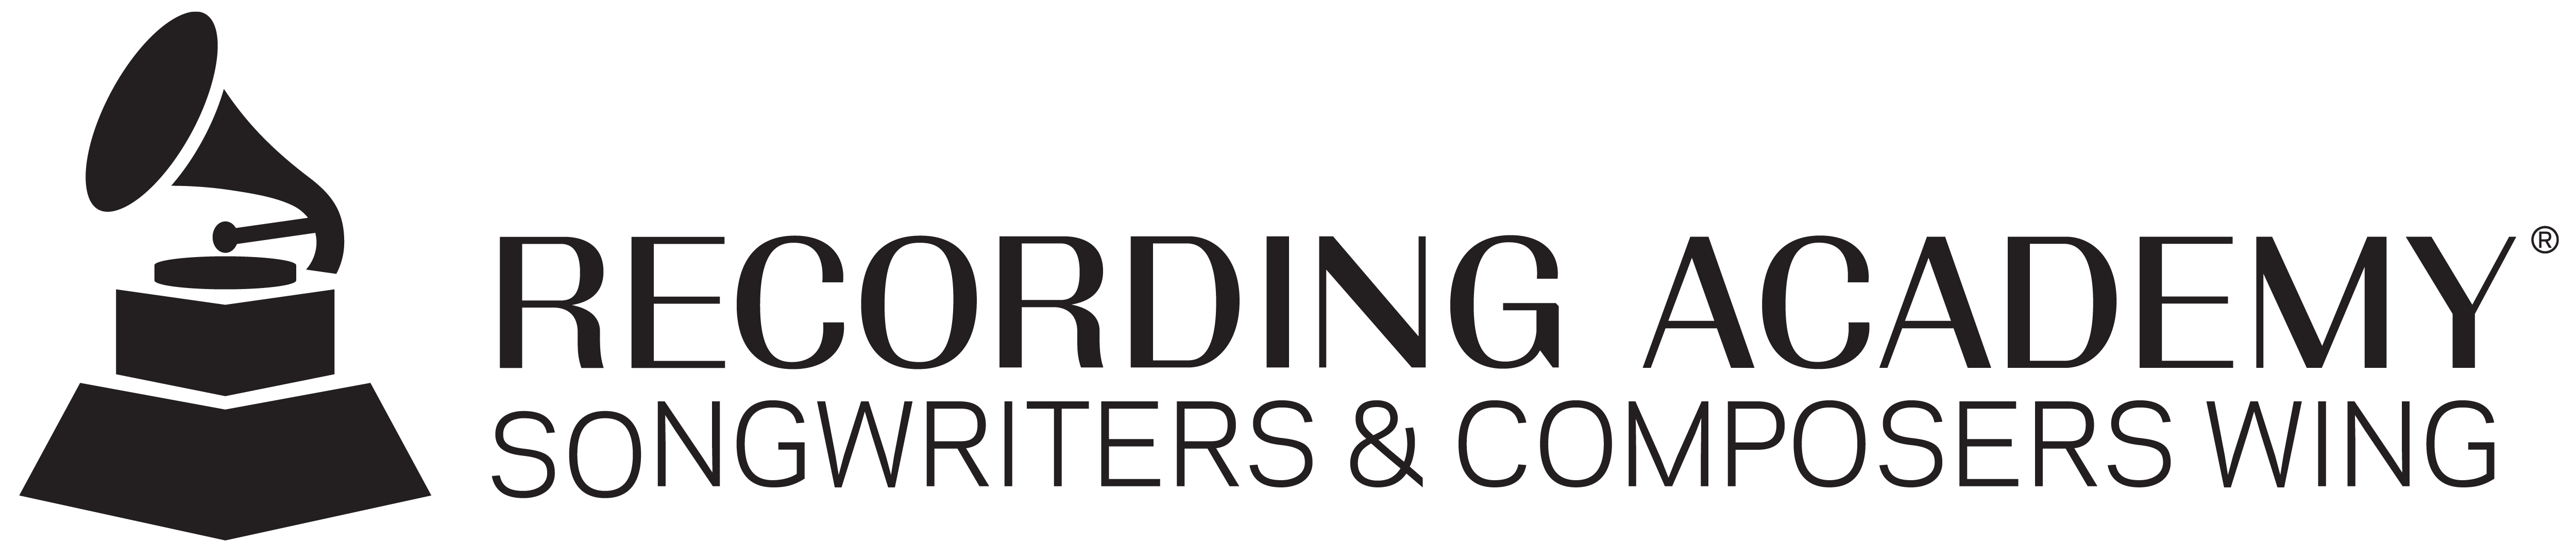 Songwriters and Composers Wing Black Logo